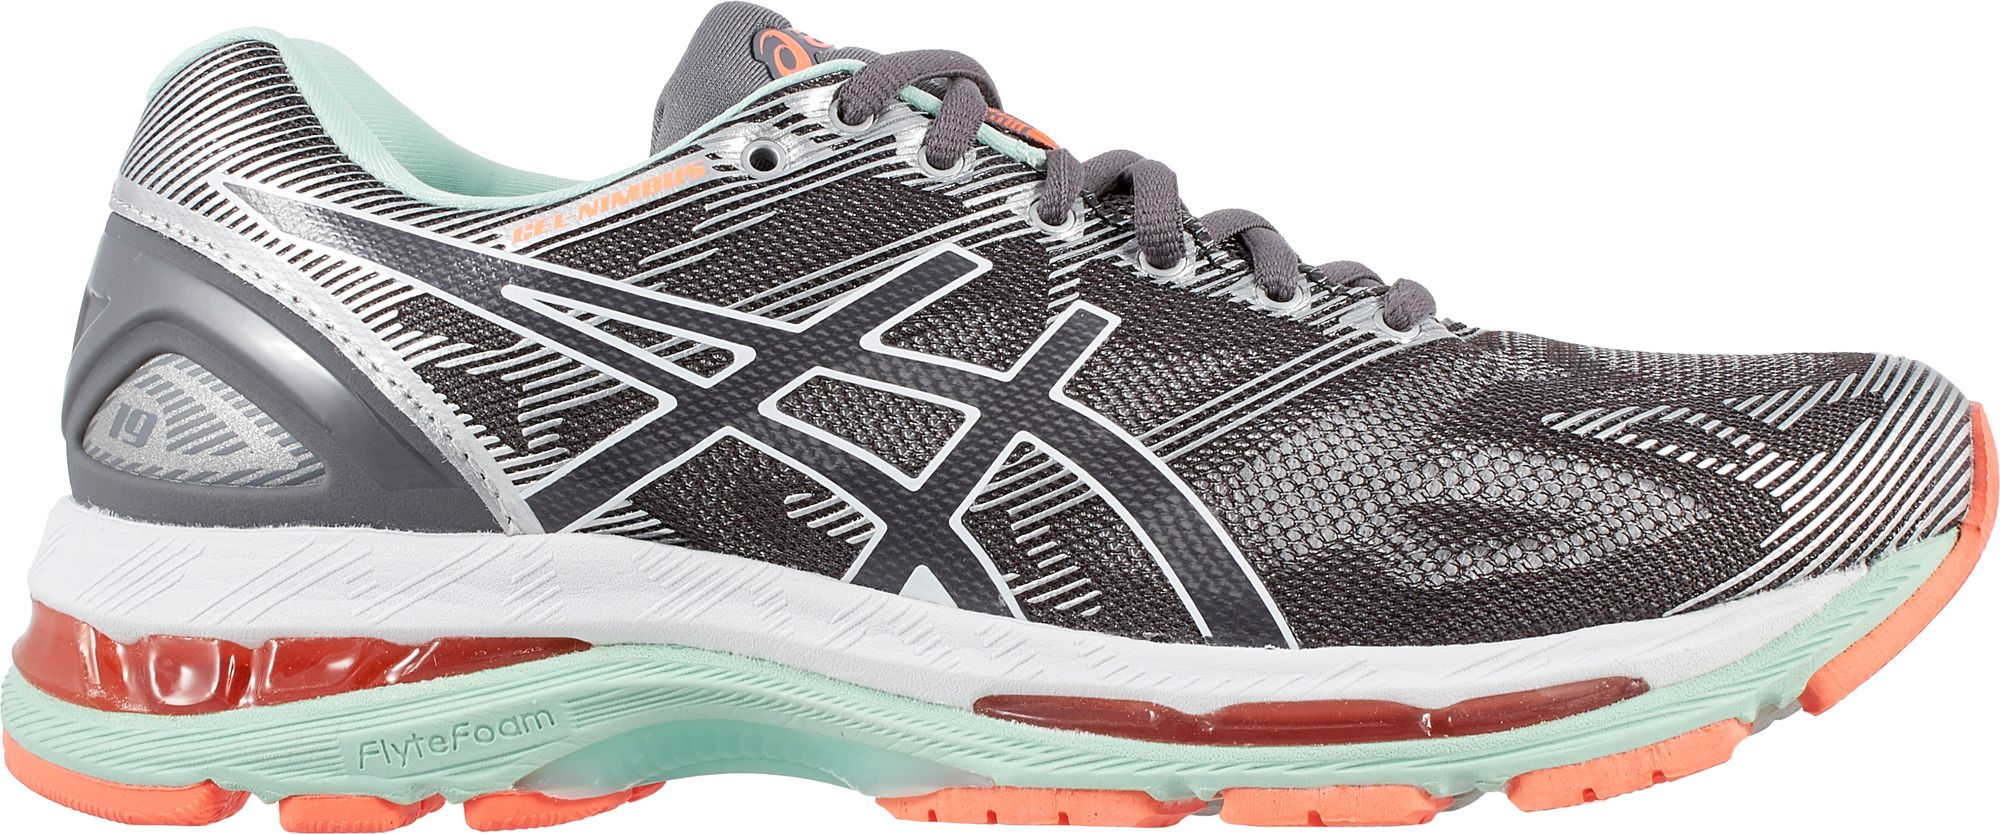 super cute a1bdc 9e68d ASICS Women's GEL-Nimbus 19 Running Shoes | DICK'S Sporting ...